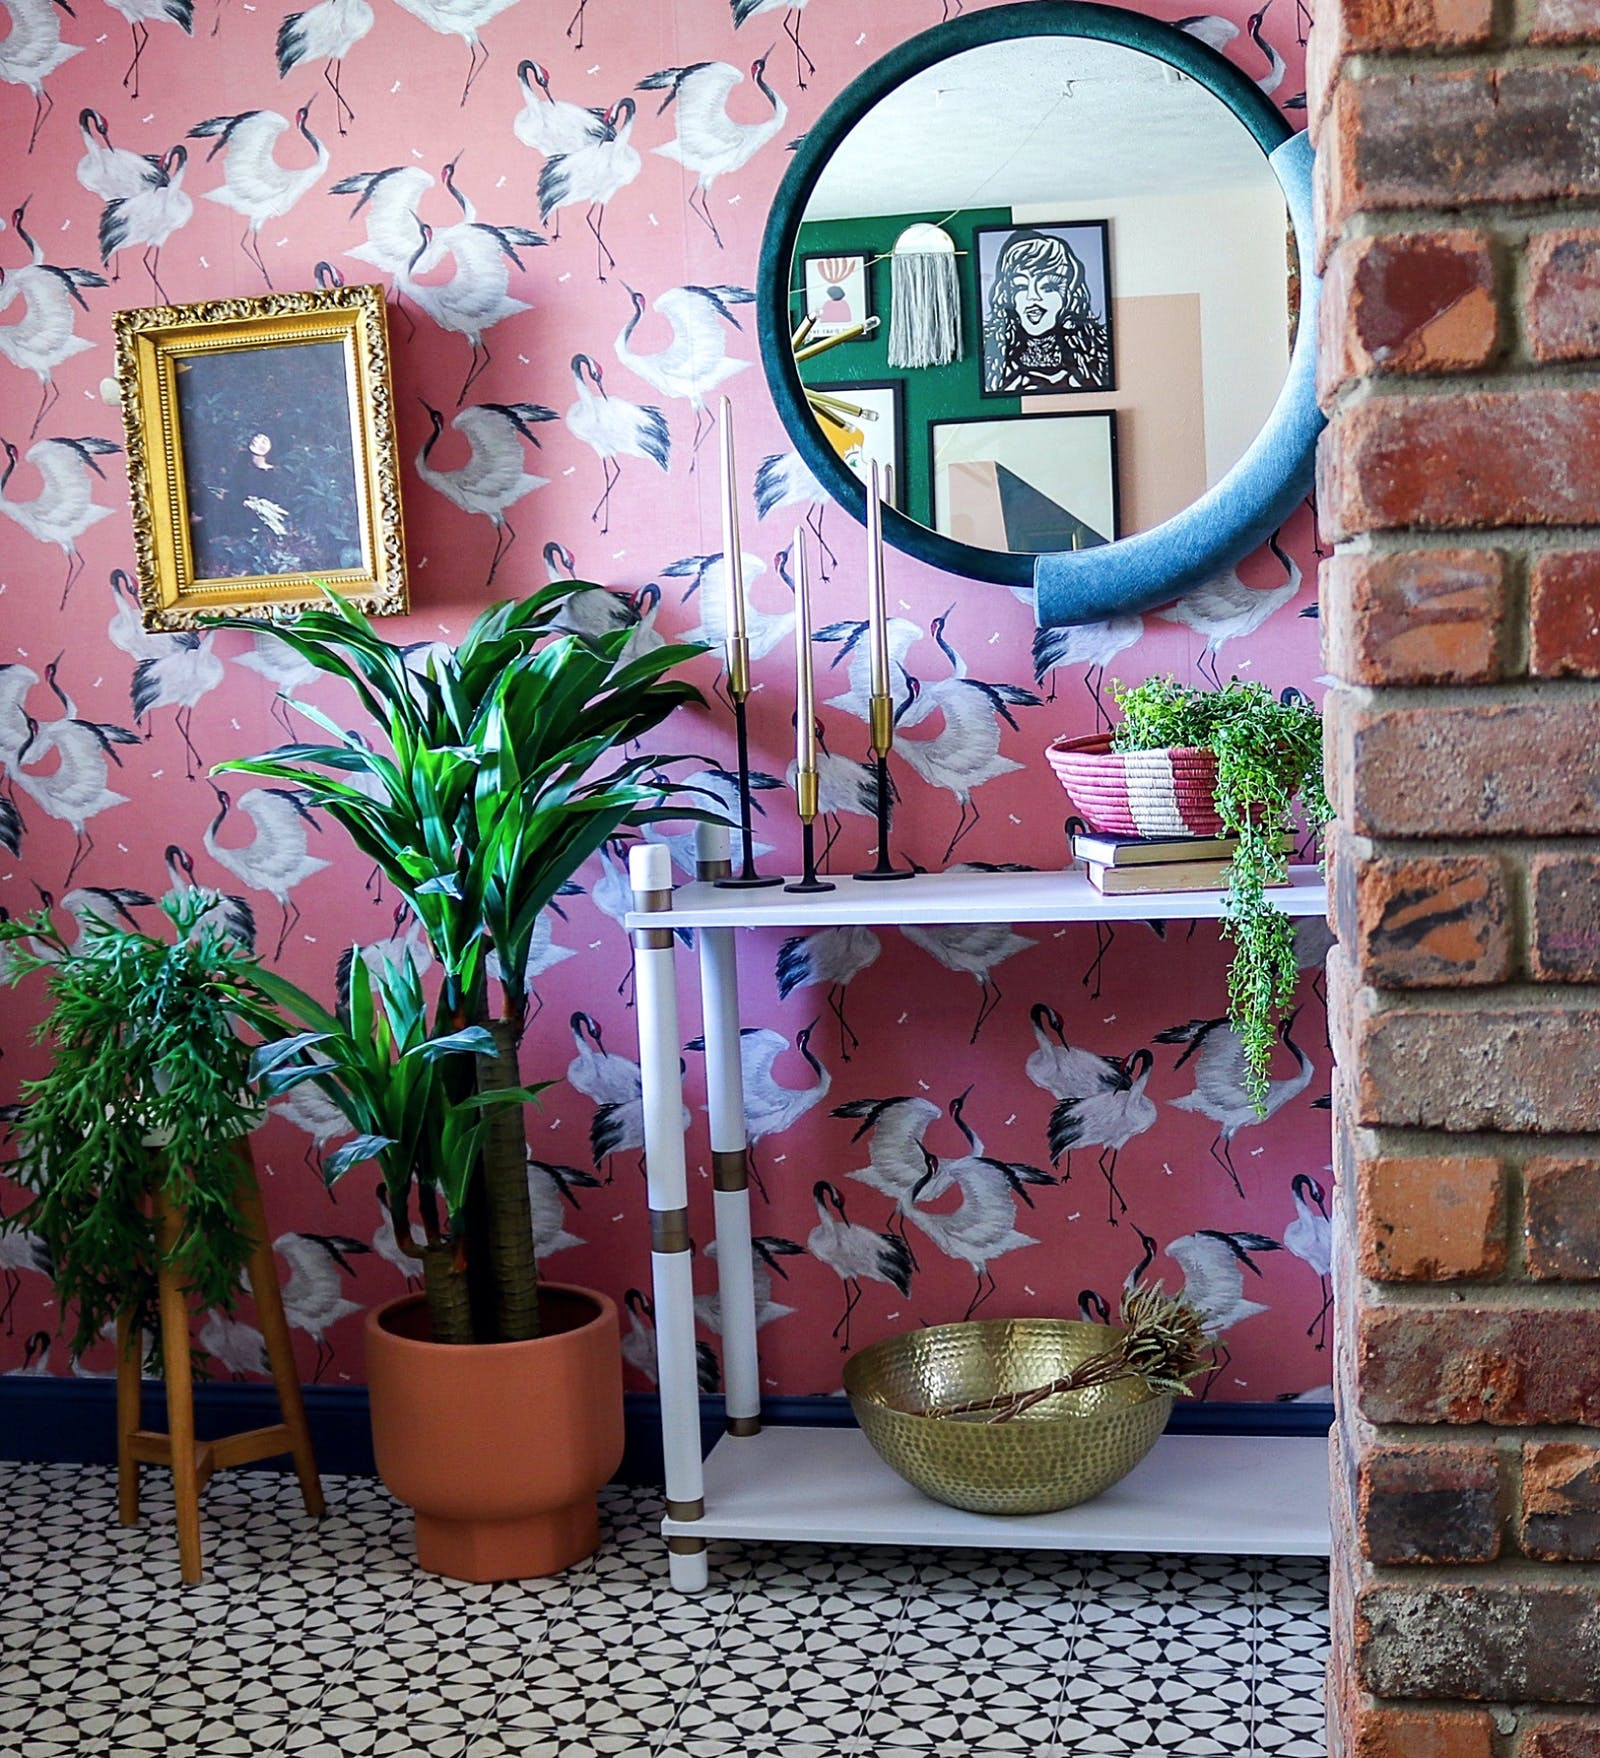 Image of hallway with bird print wallpaper and large plants